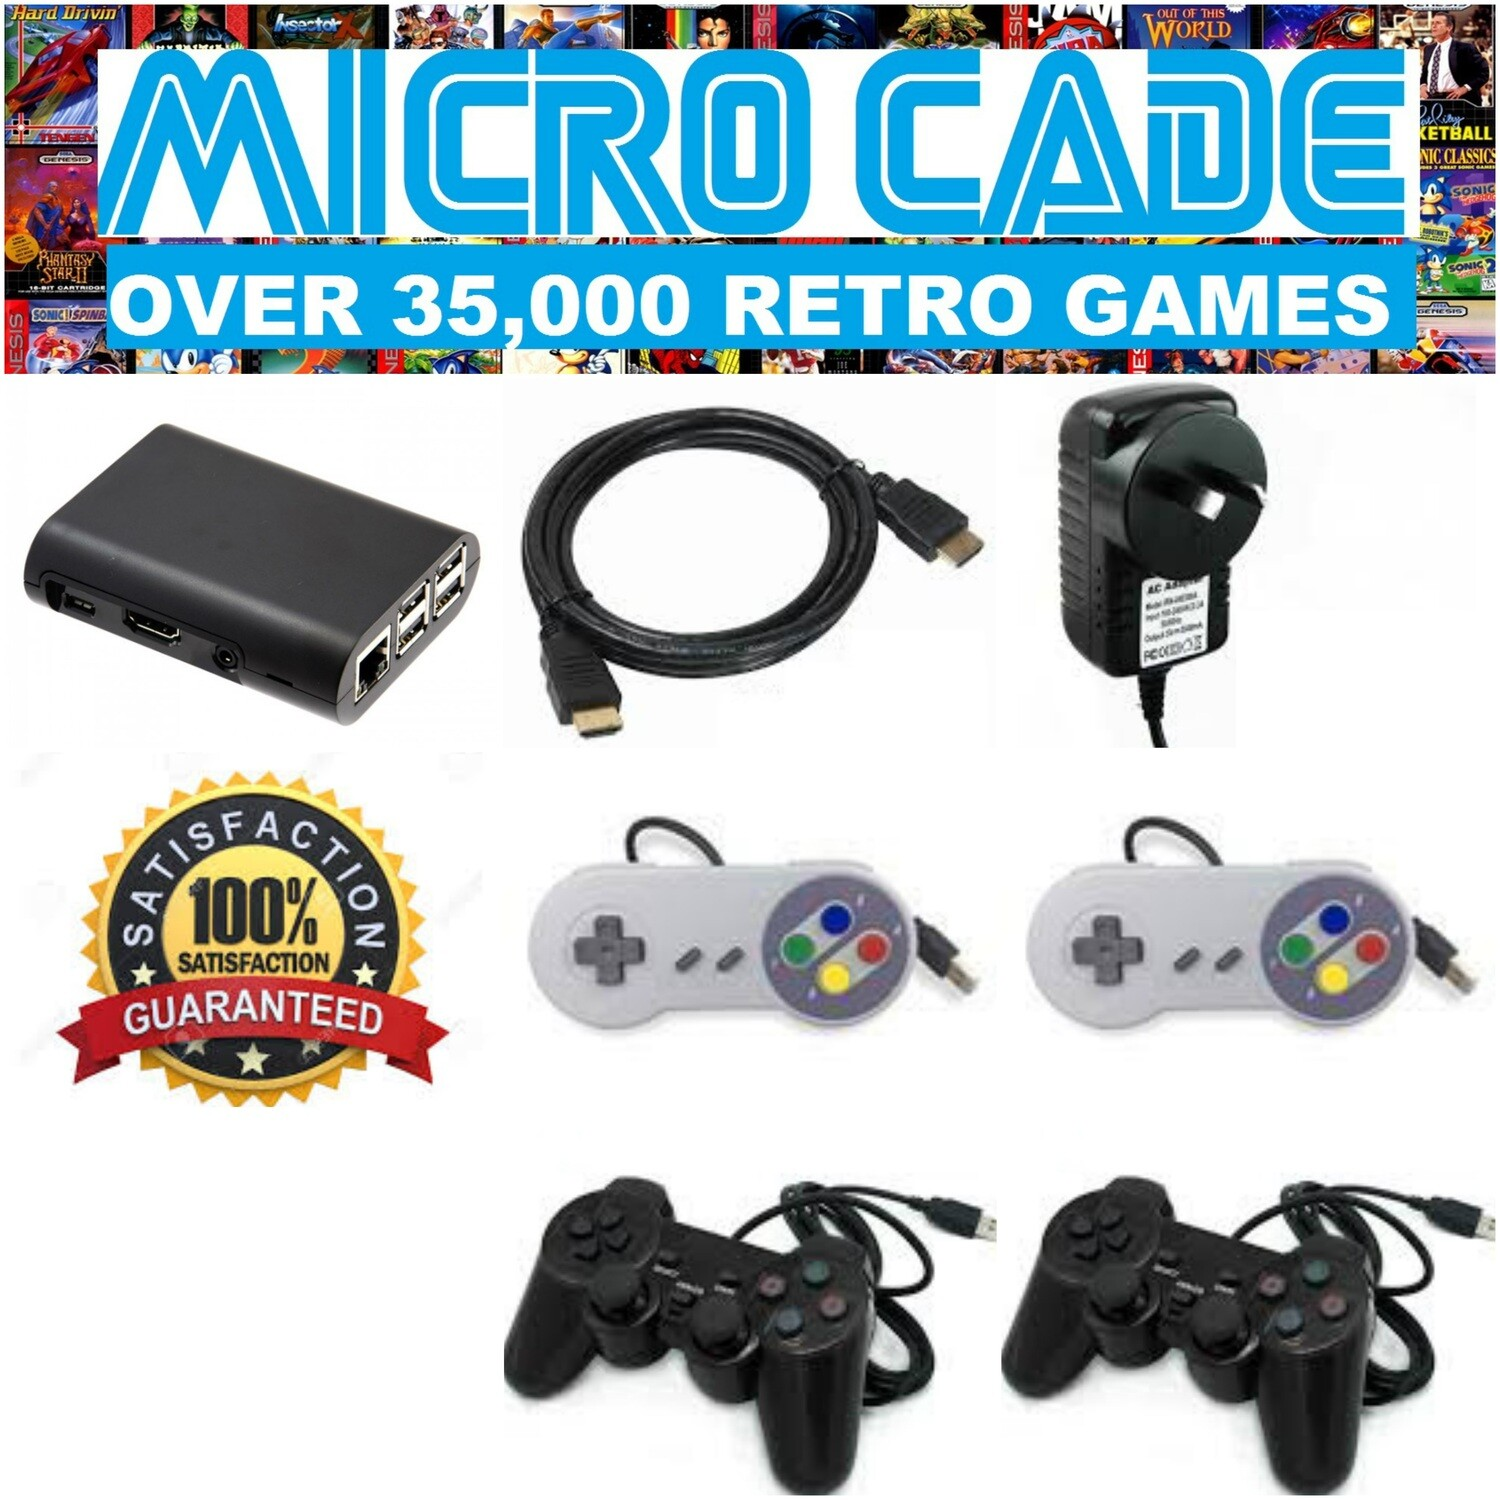 MICRO CADE OVER 35,000 RETRO GAMES WITH 2 X PS CONTROLLERS AND 2 X SNES CONTROLLERS